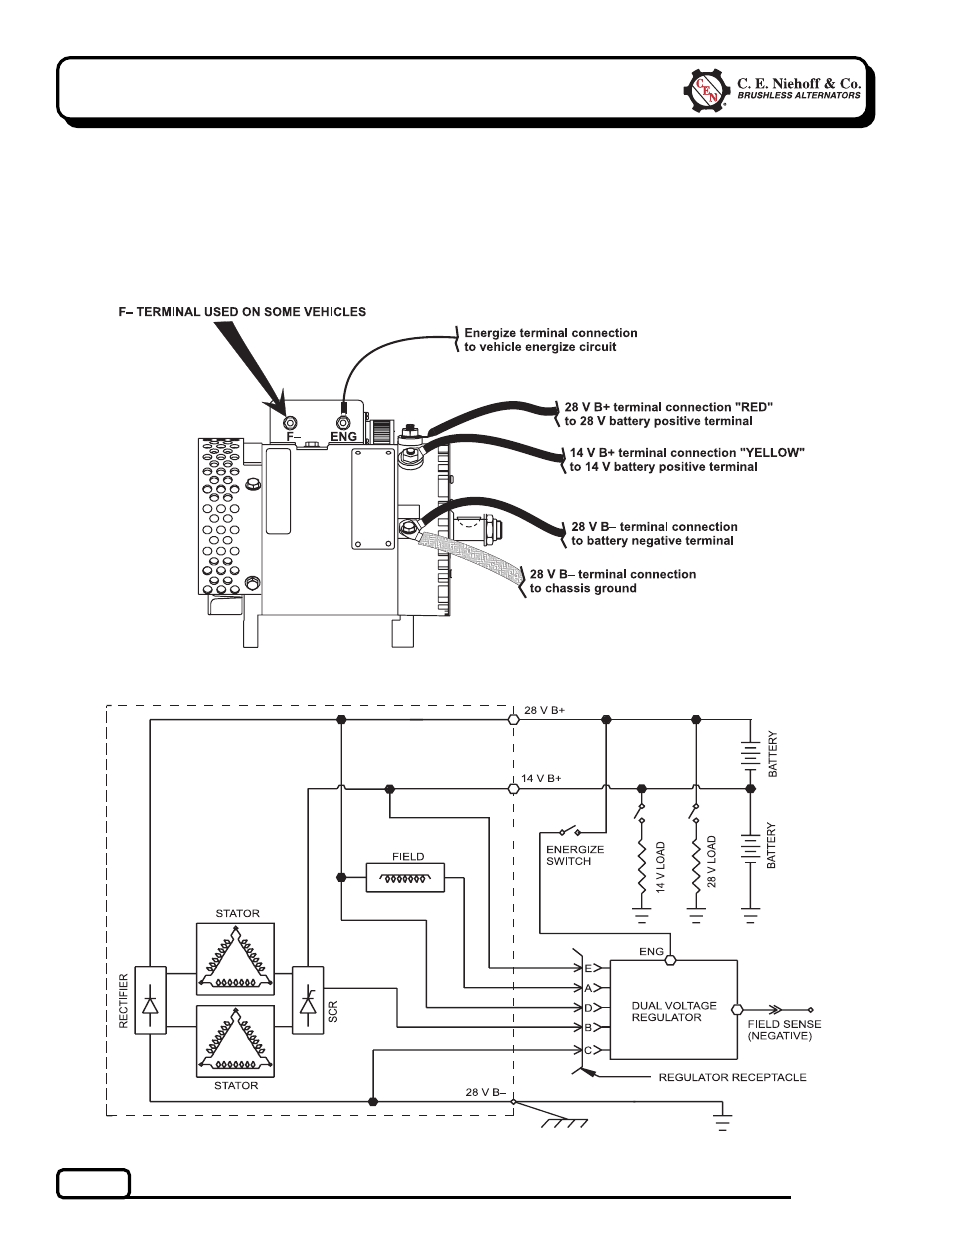 C E Niehoff Amp Co N 1 Troubleshooting Guides User